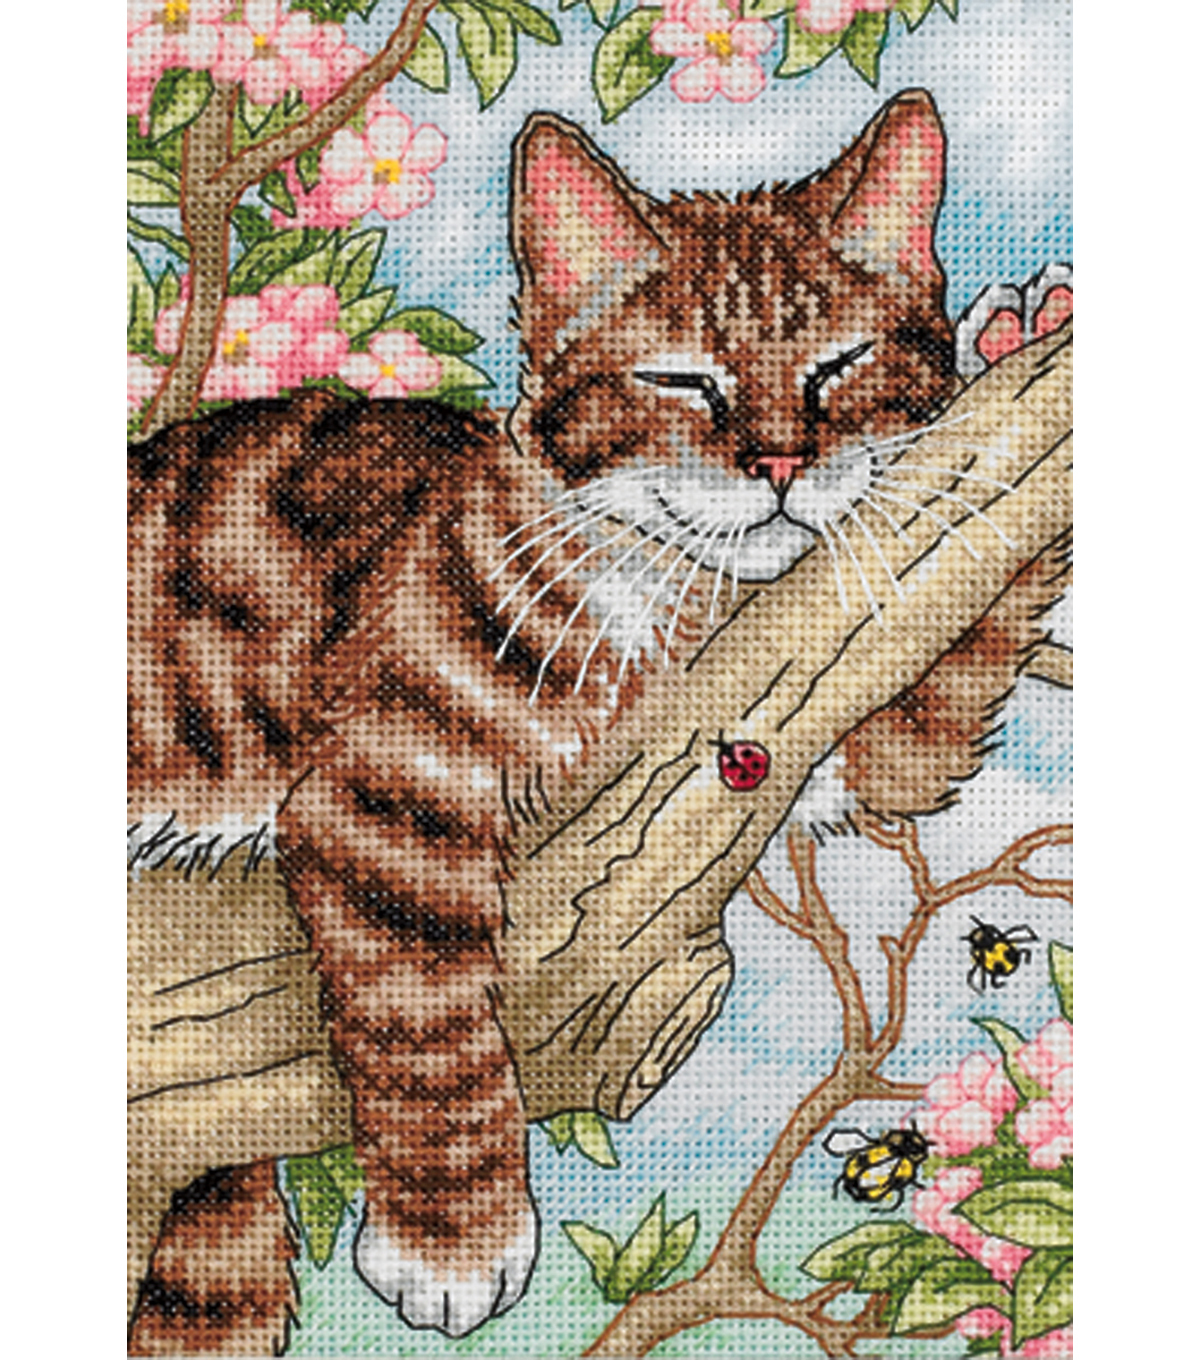 Gold Collection Petite Napping Kitten Counted Cross Stitch Kit